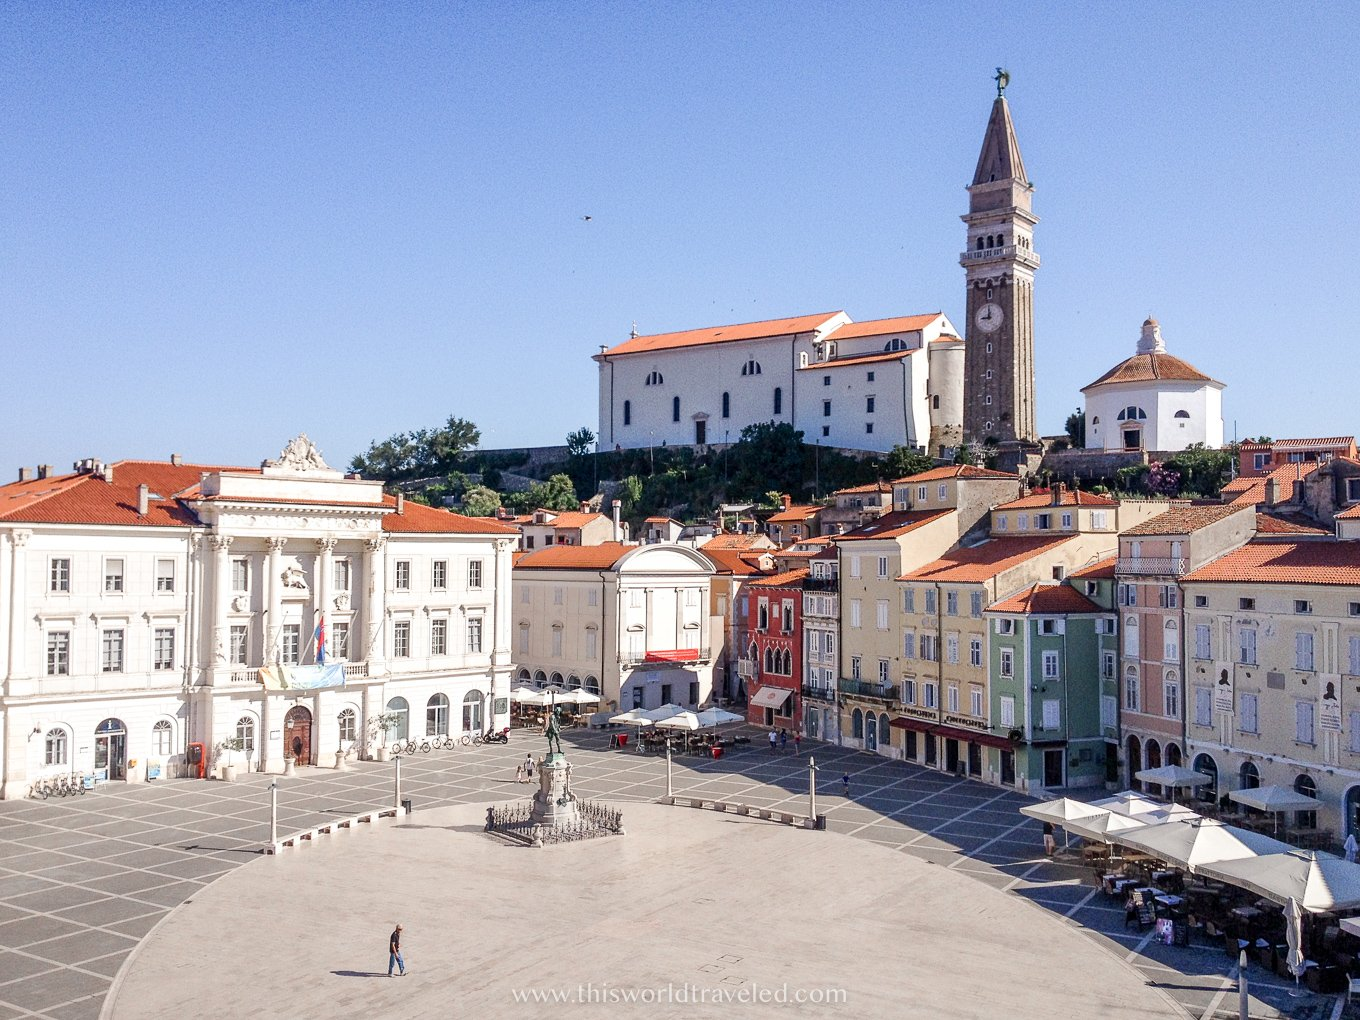 A large open square in the middle of Old Town with Venetian architecture in Piran, Slovenia